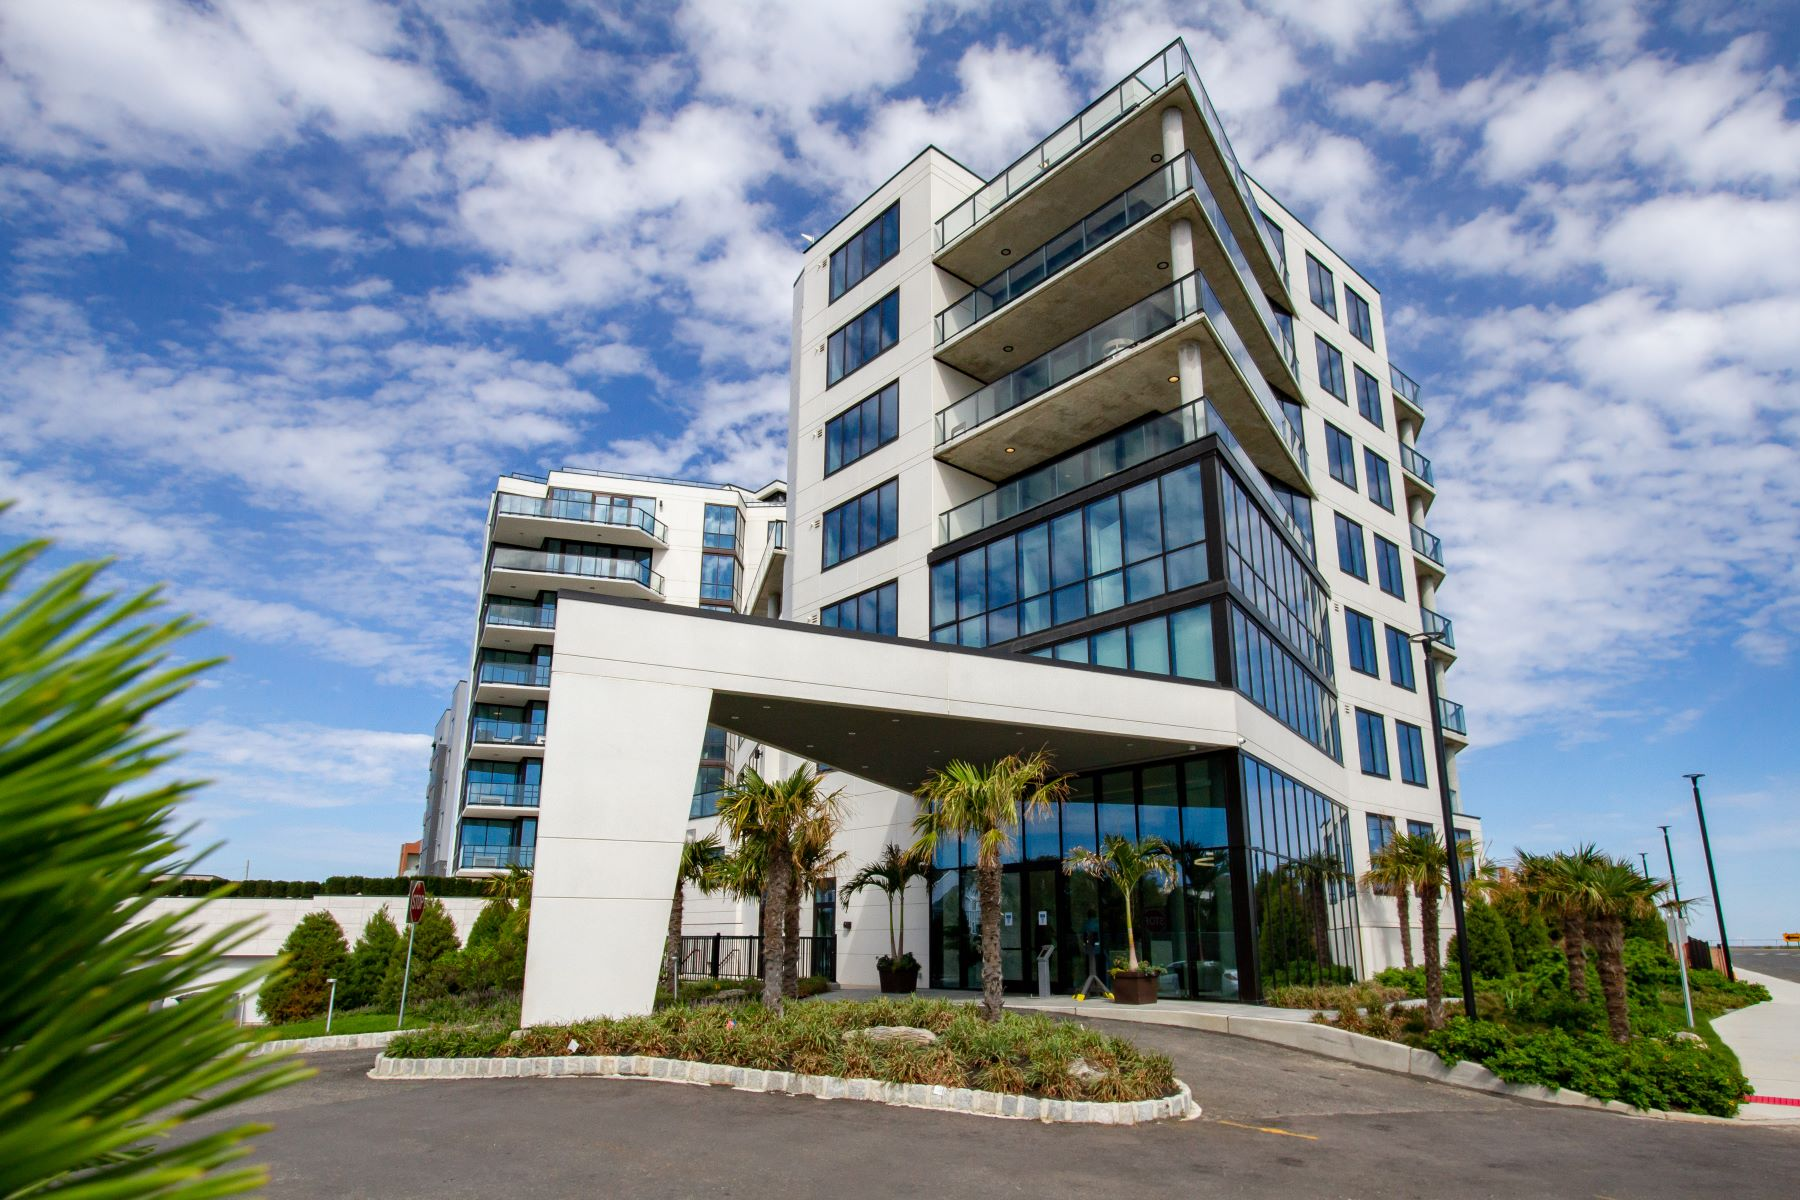 Condominiums for Sale at South Beach at Long Branch 350 Ocean Avenue 105, Long Branch, New Jersey 07740 United States